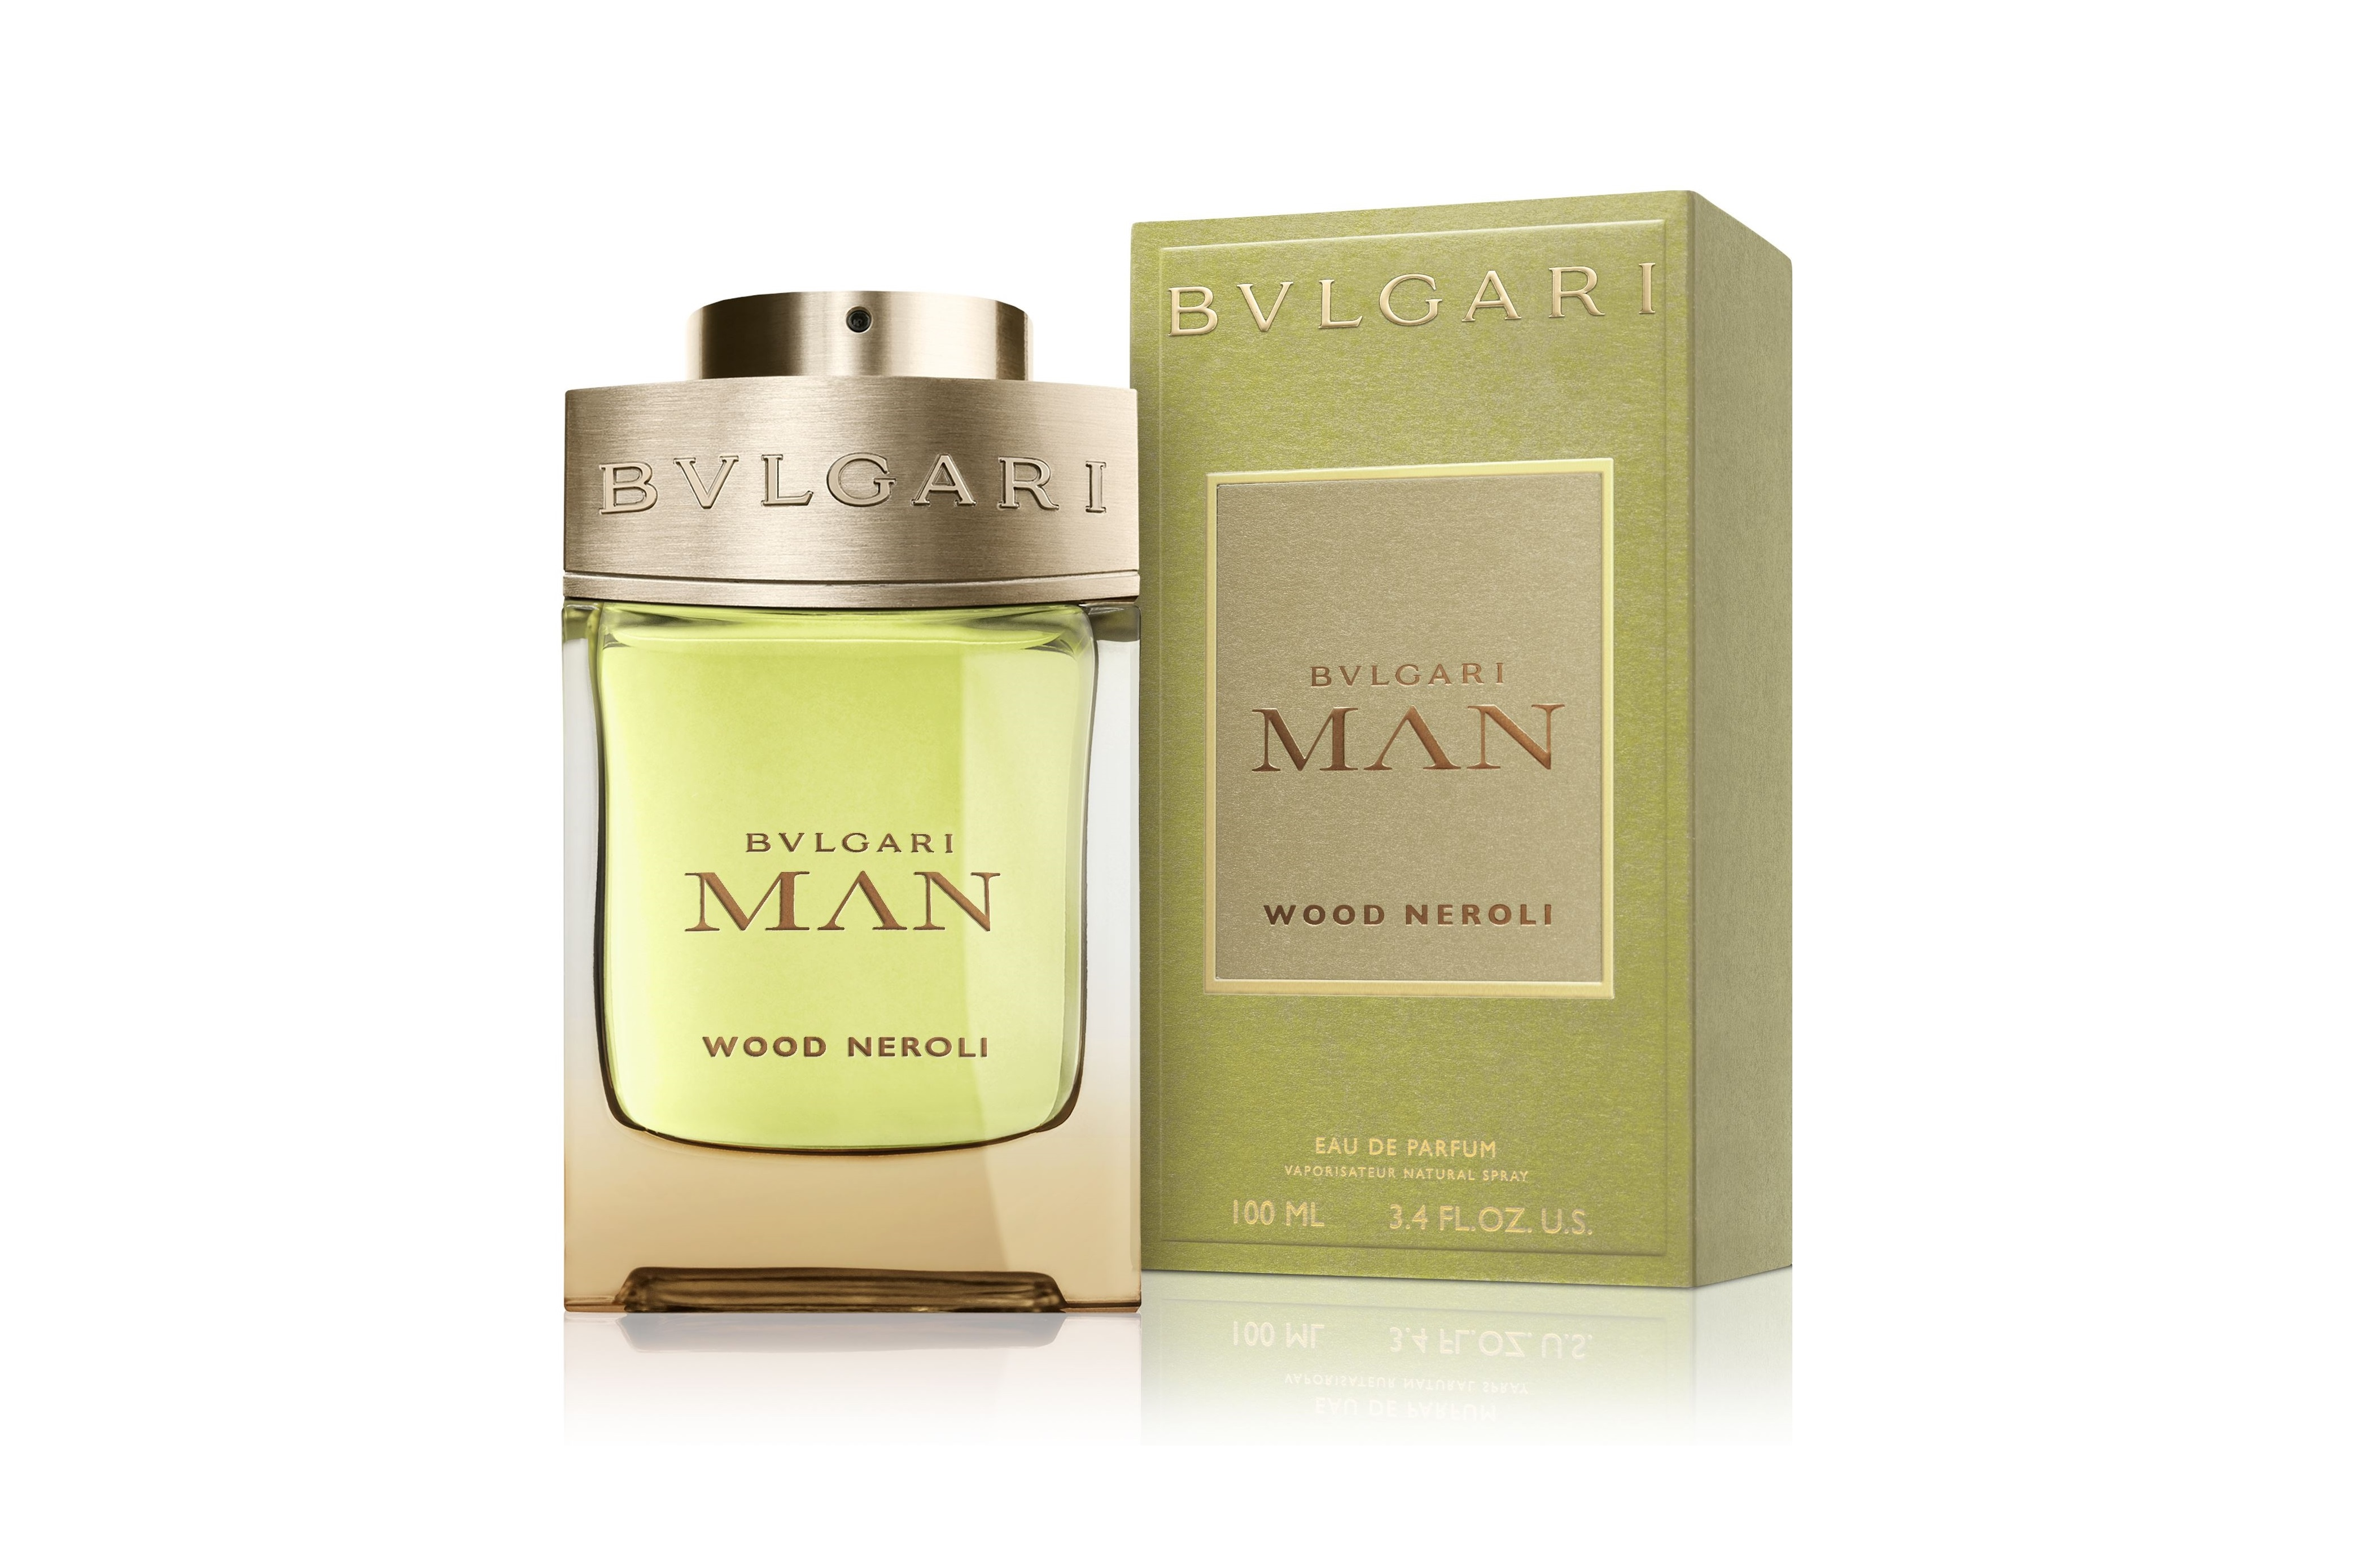 Bvlgari Man Wood Neroli 100 mL